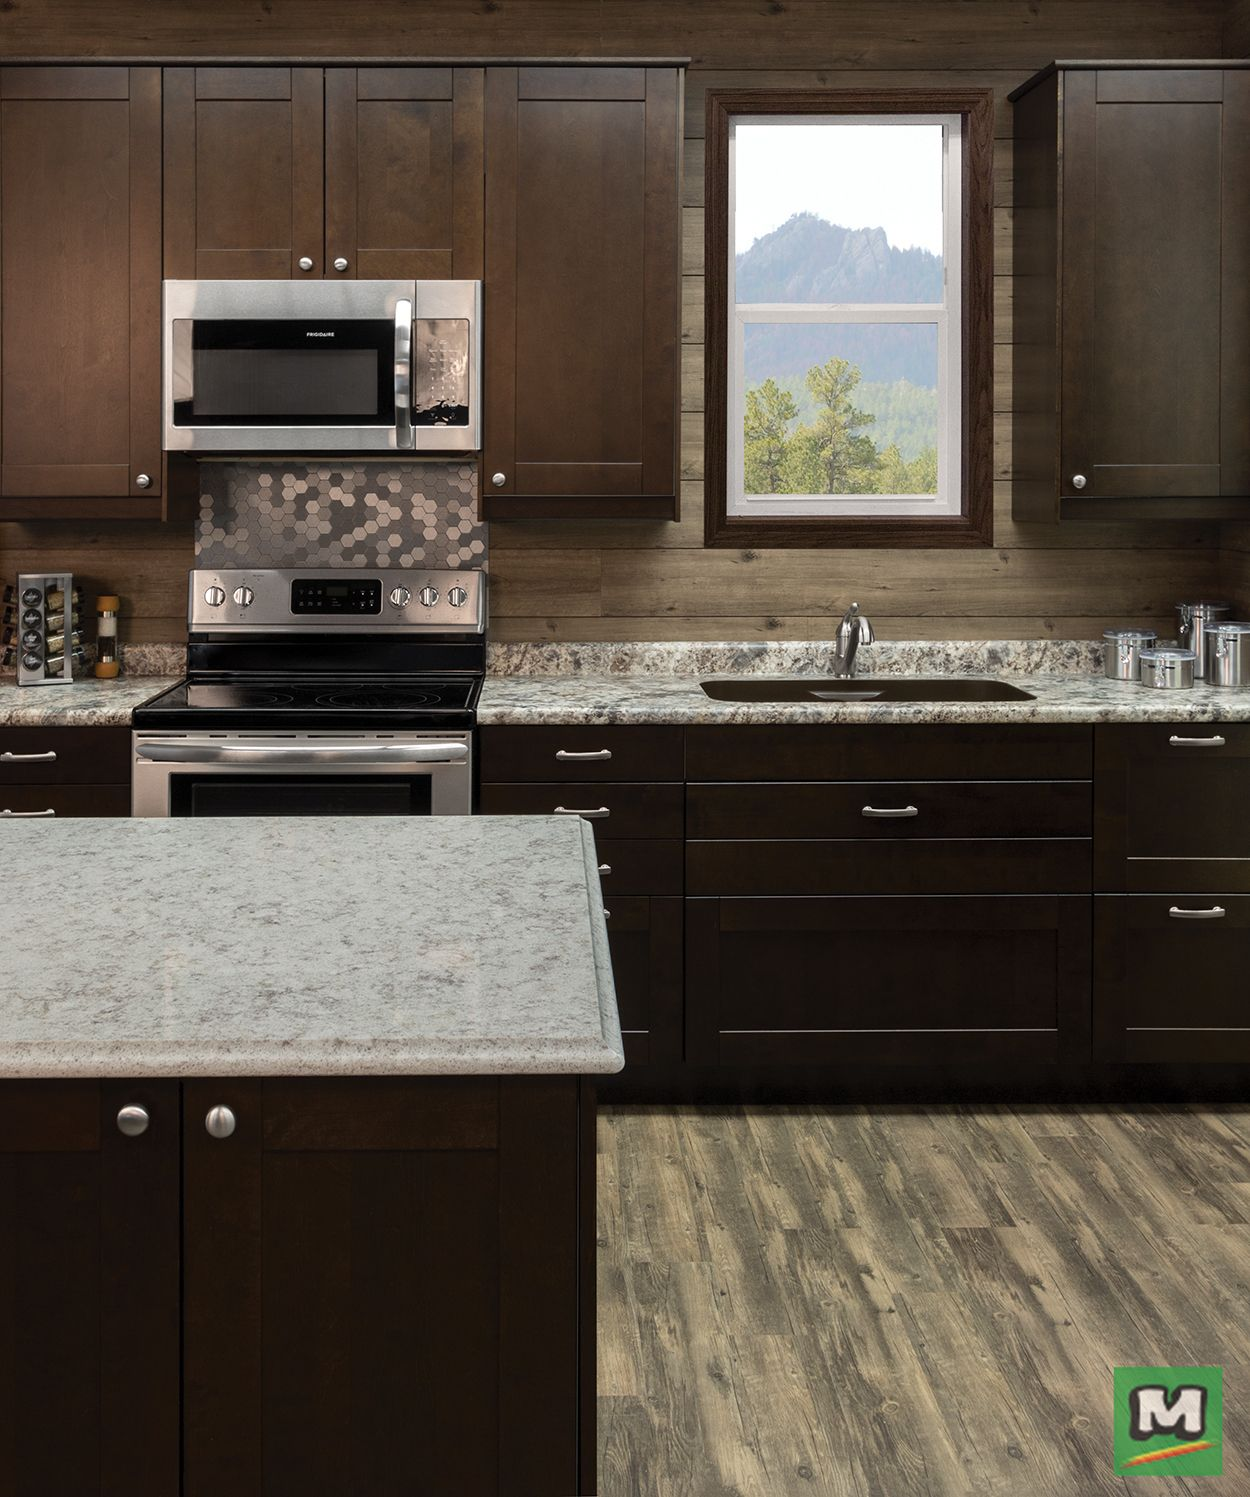 Customize Your Kitchen With Klearvue Cabinetry Complete With Full Access Cabinets The Malmo Mocha Shaker Style Door Will Kitchen Design Kitchen New Kitchen